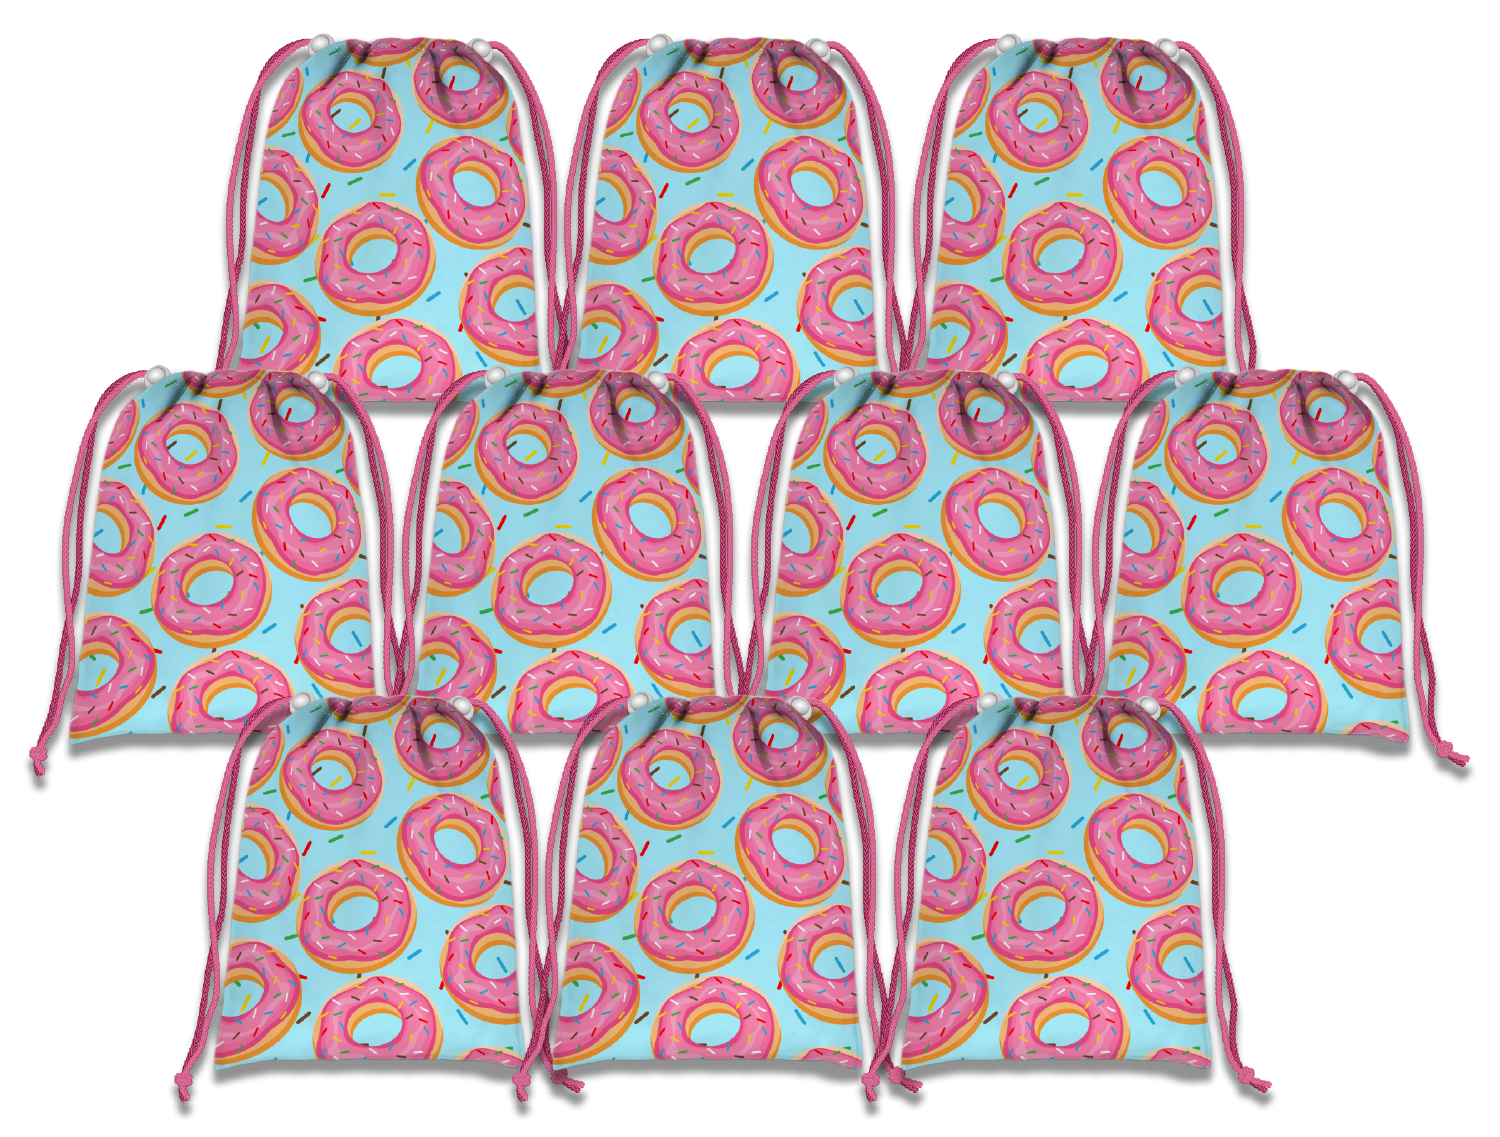 Donut Shoppe Drawstring Tote Bag (10 Pack) - BirthdayGalore.com